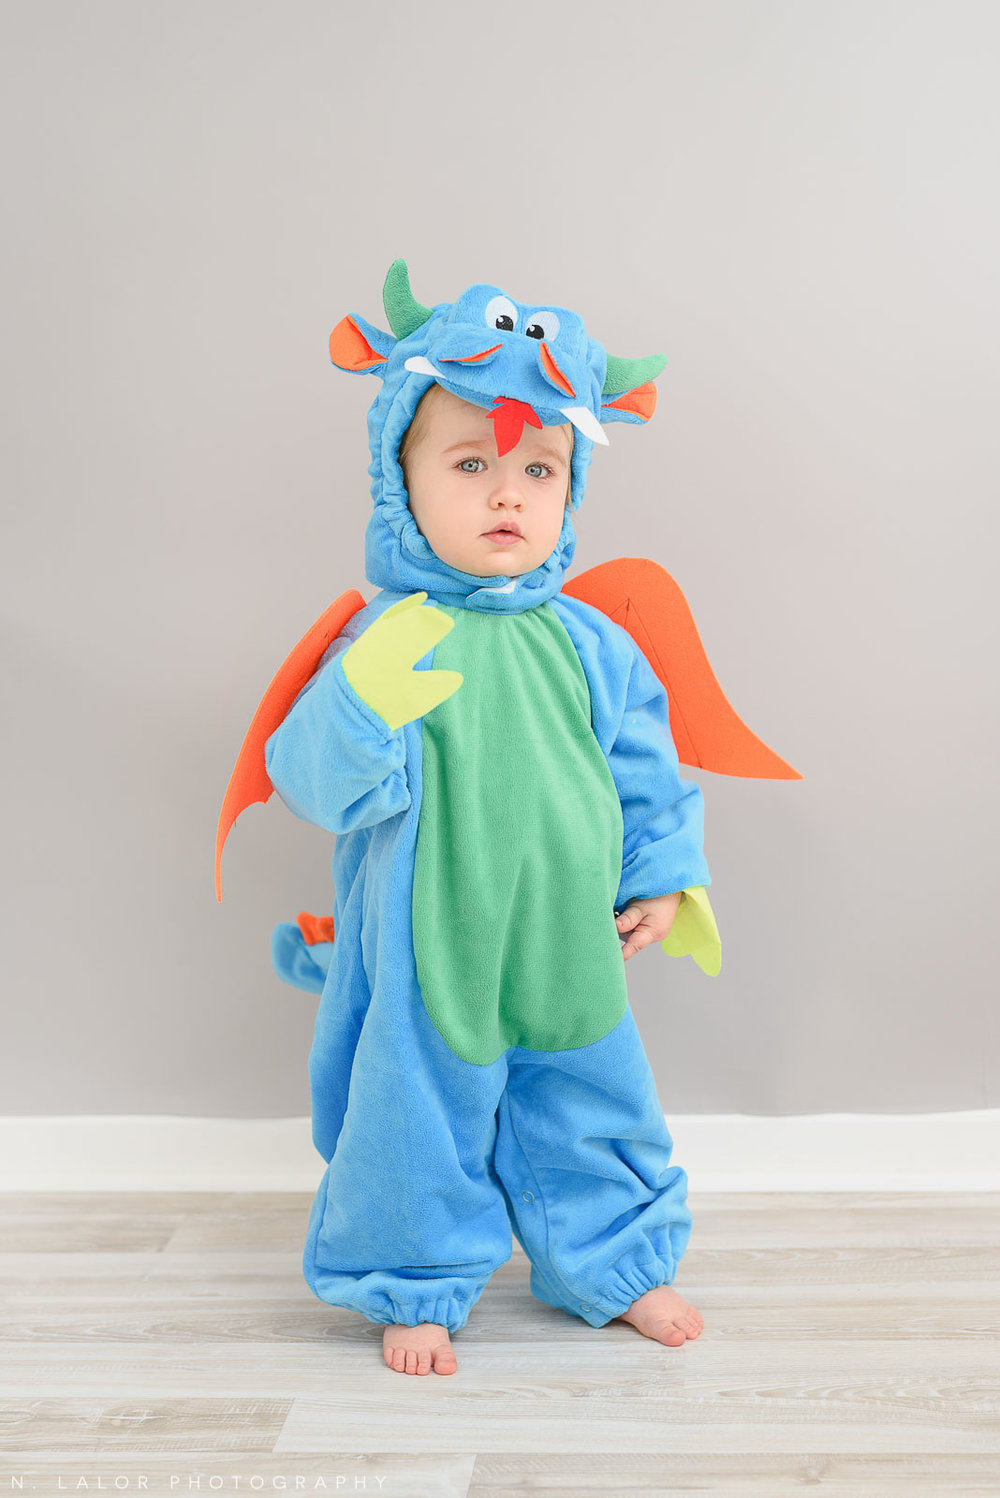 Image of toddler dressed up as a dragon for Halloween. Portrait by N. Lalor Photography in Greenwich, Connecticut.